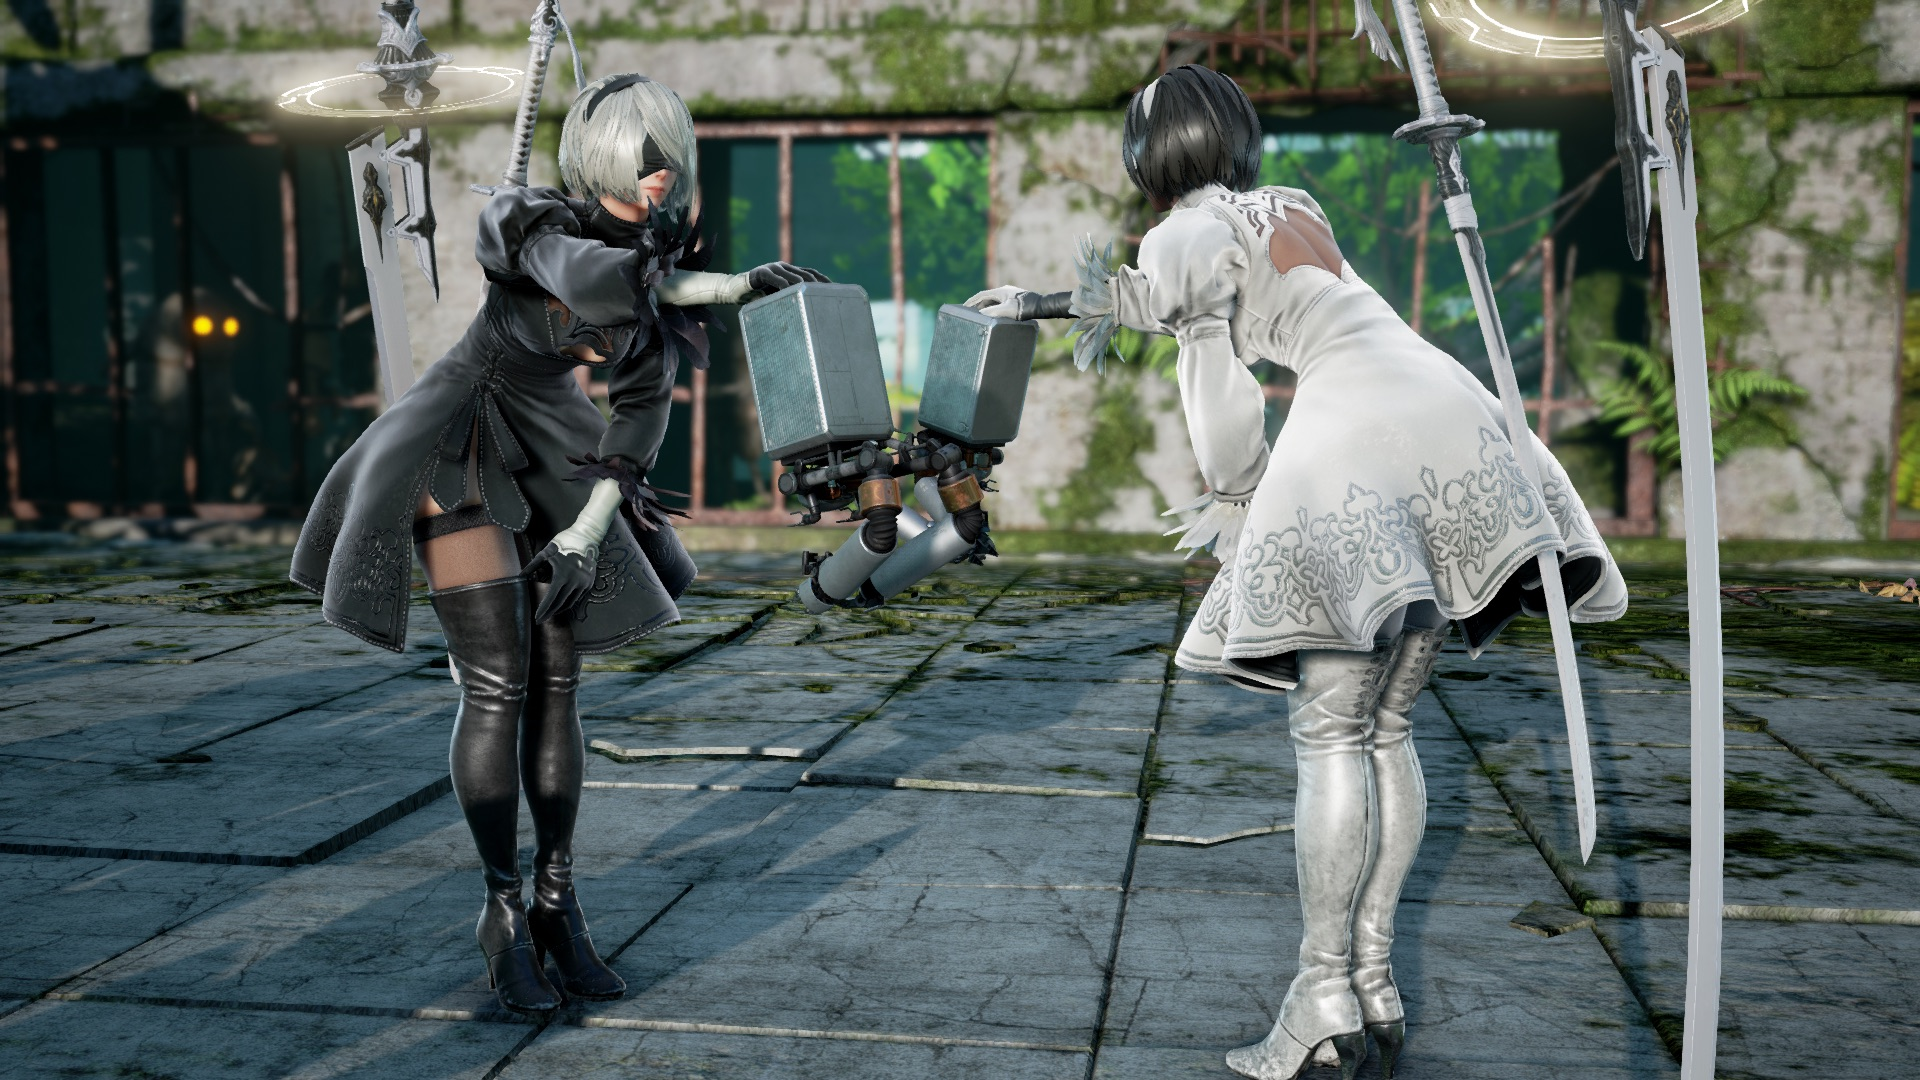 2B From NieR Automata Coming to Soulcalibur VI